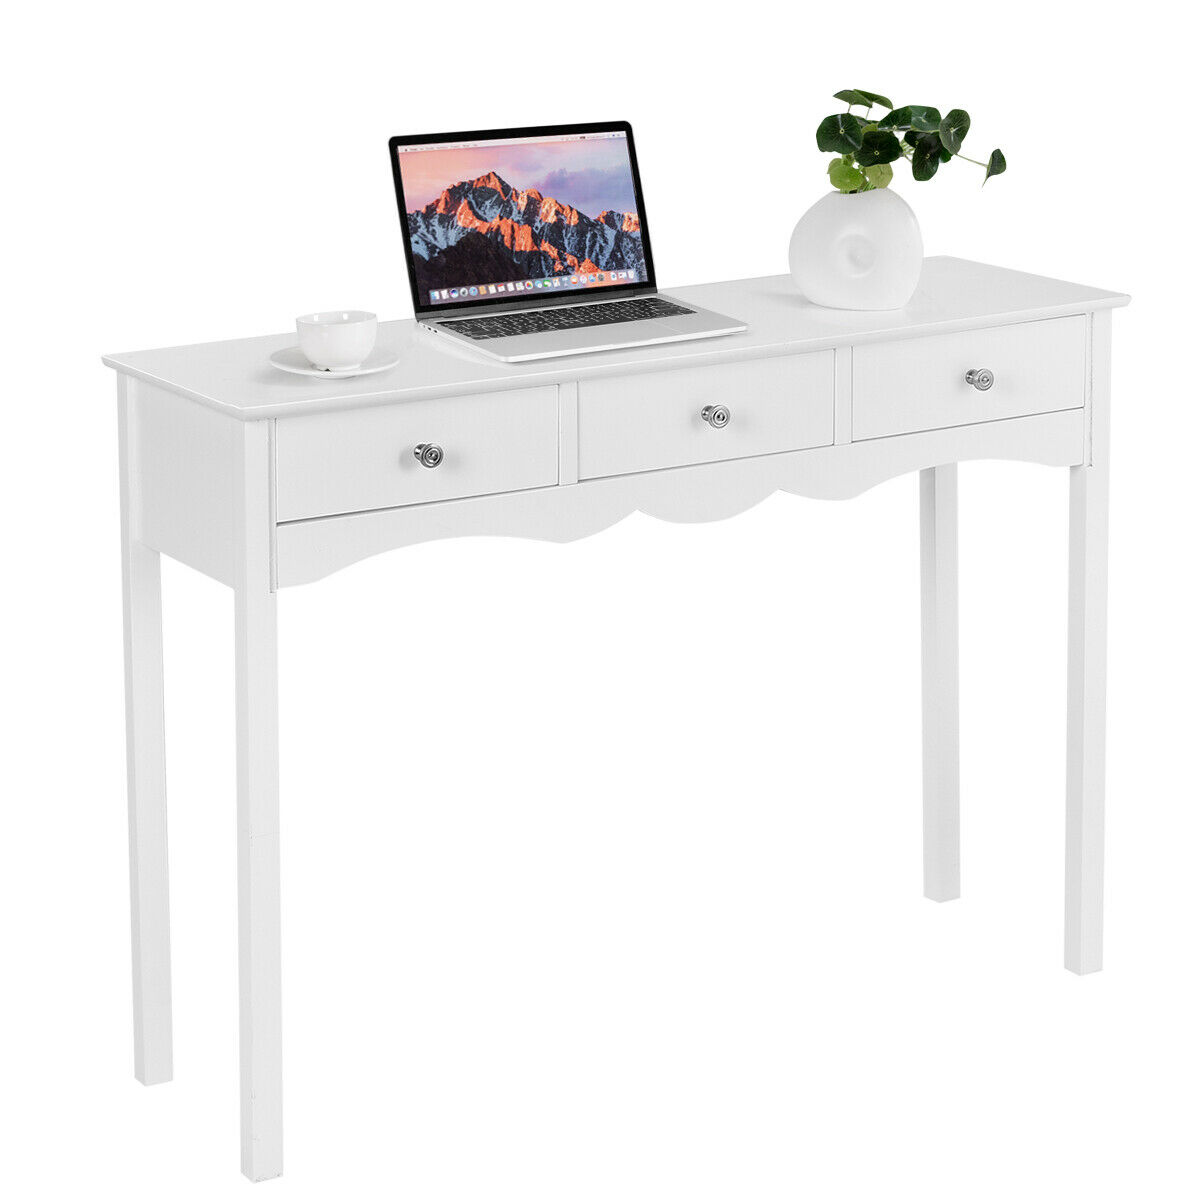 Etonnant Costway Console Table Hall Table Side Table Desk Accent Table 3 Drawers  Entryway White